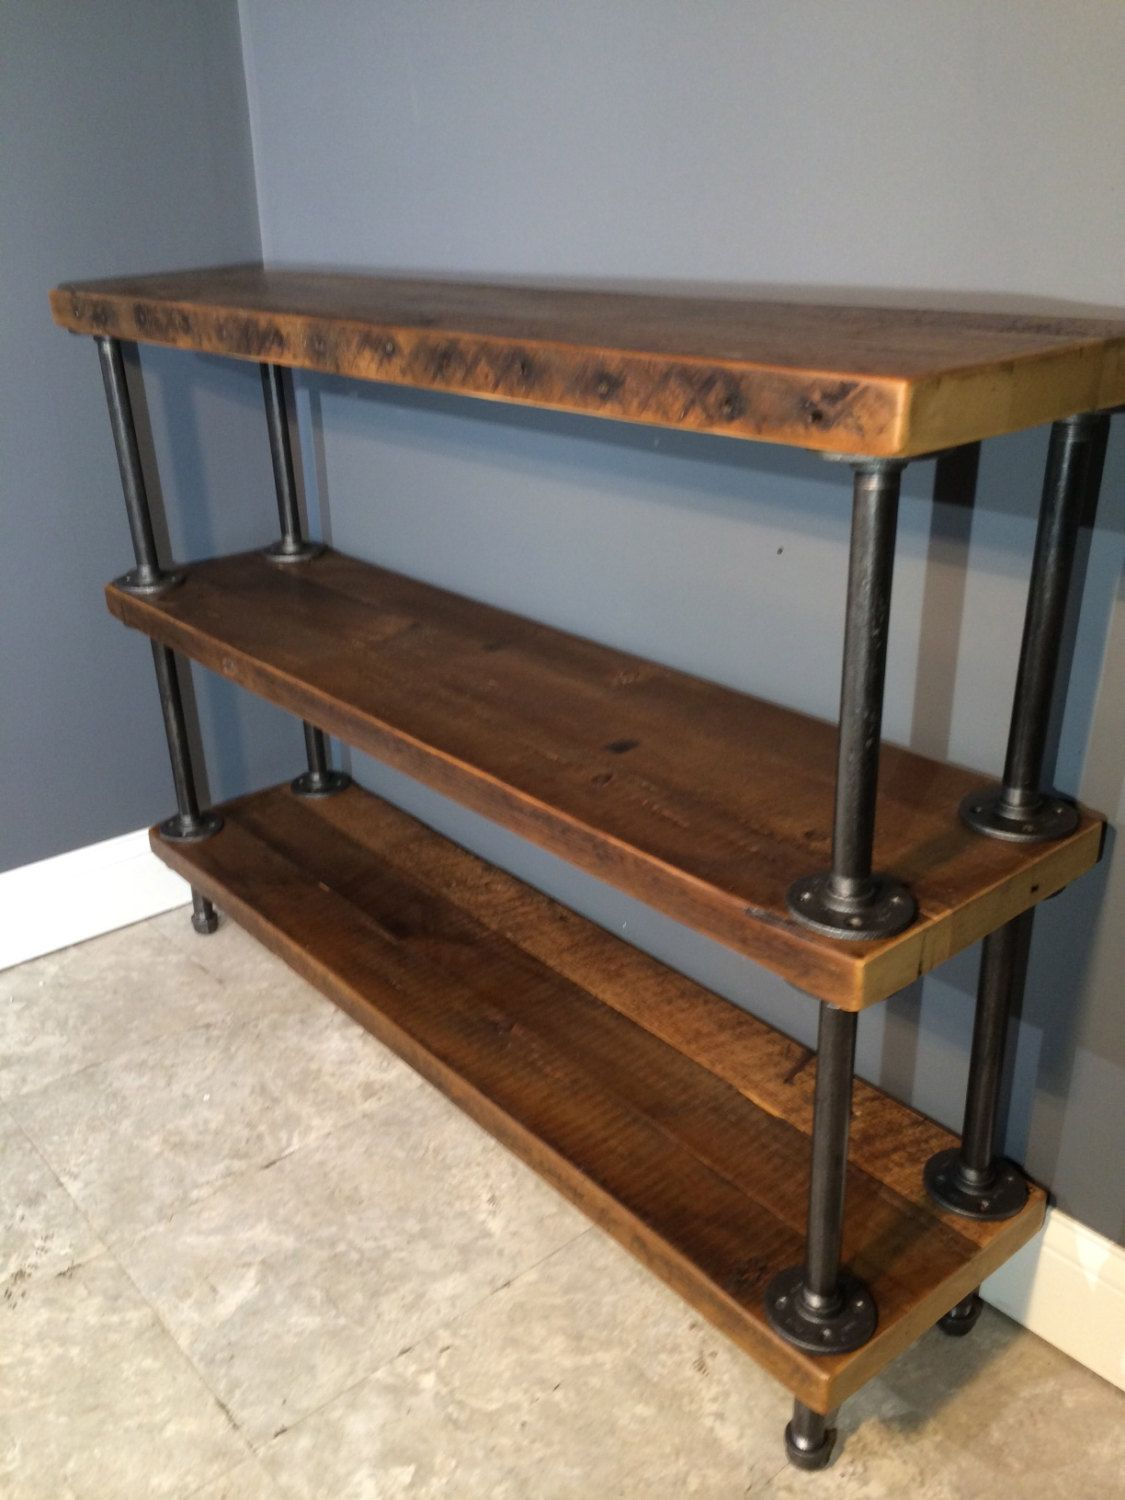 DIY Pipe Shelves: Inspired by restoration hardware | There's No ...